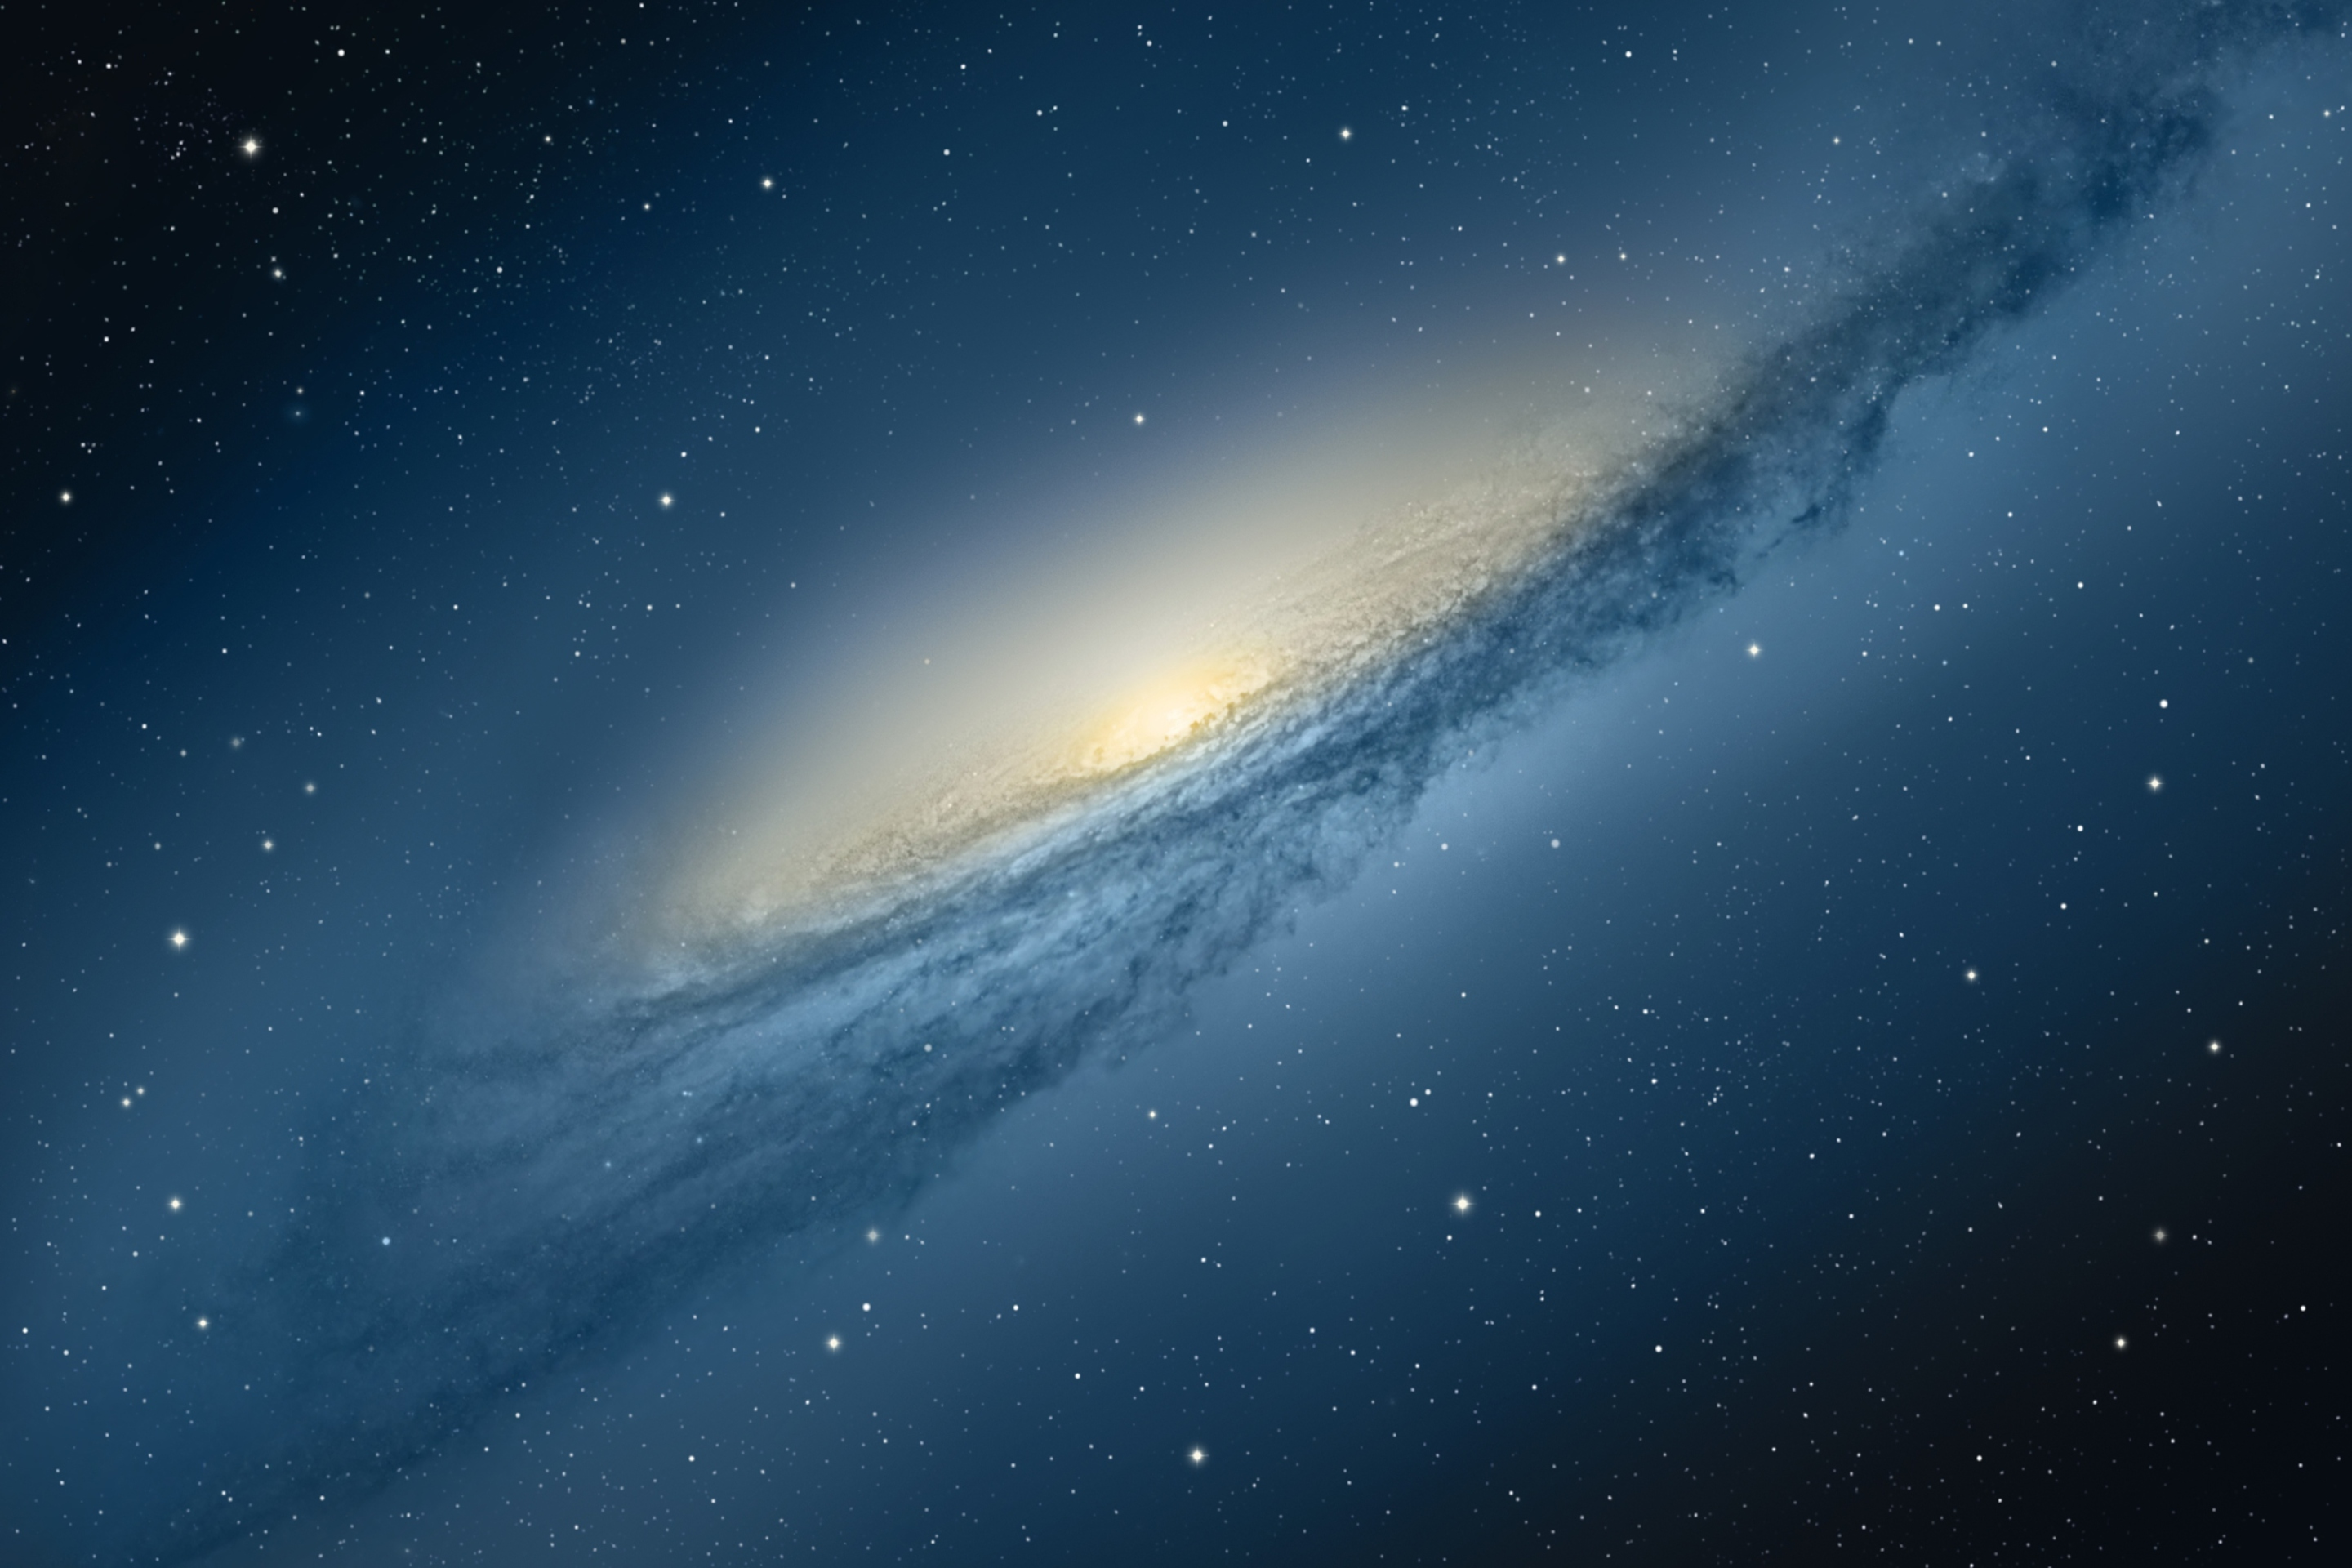 galaxy wallpapers free download! 66 best free galaxy